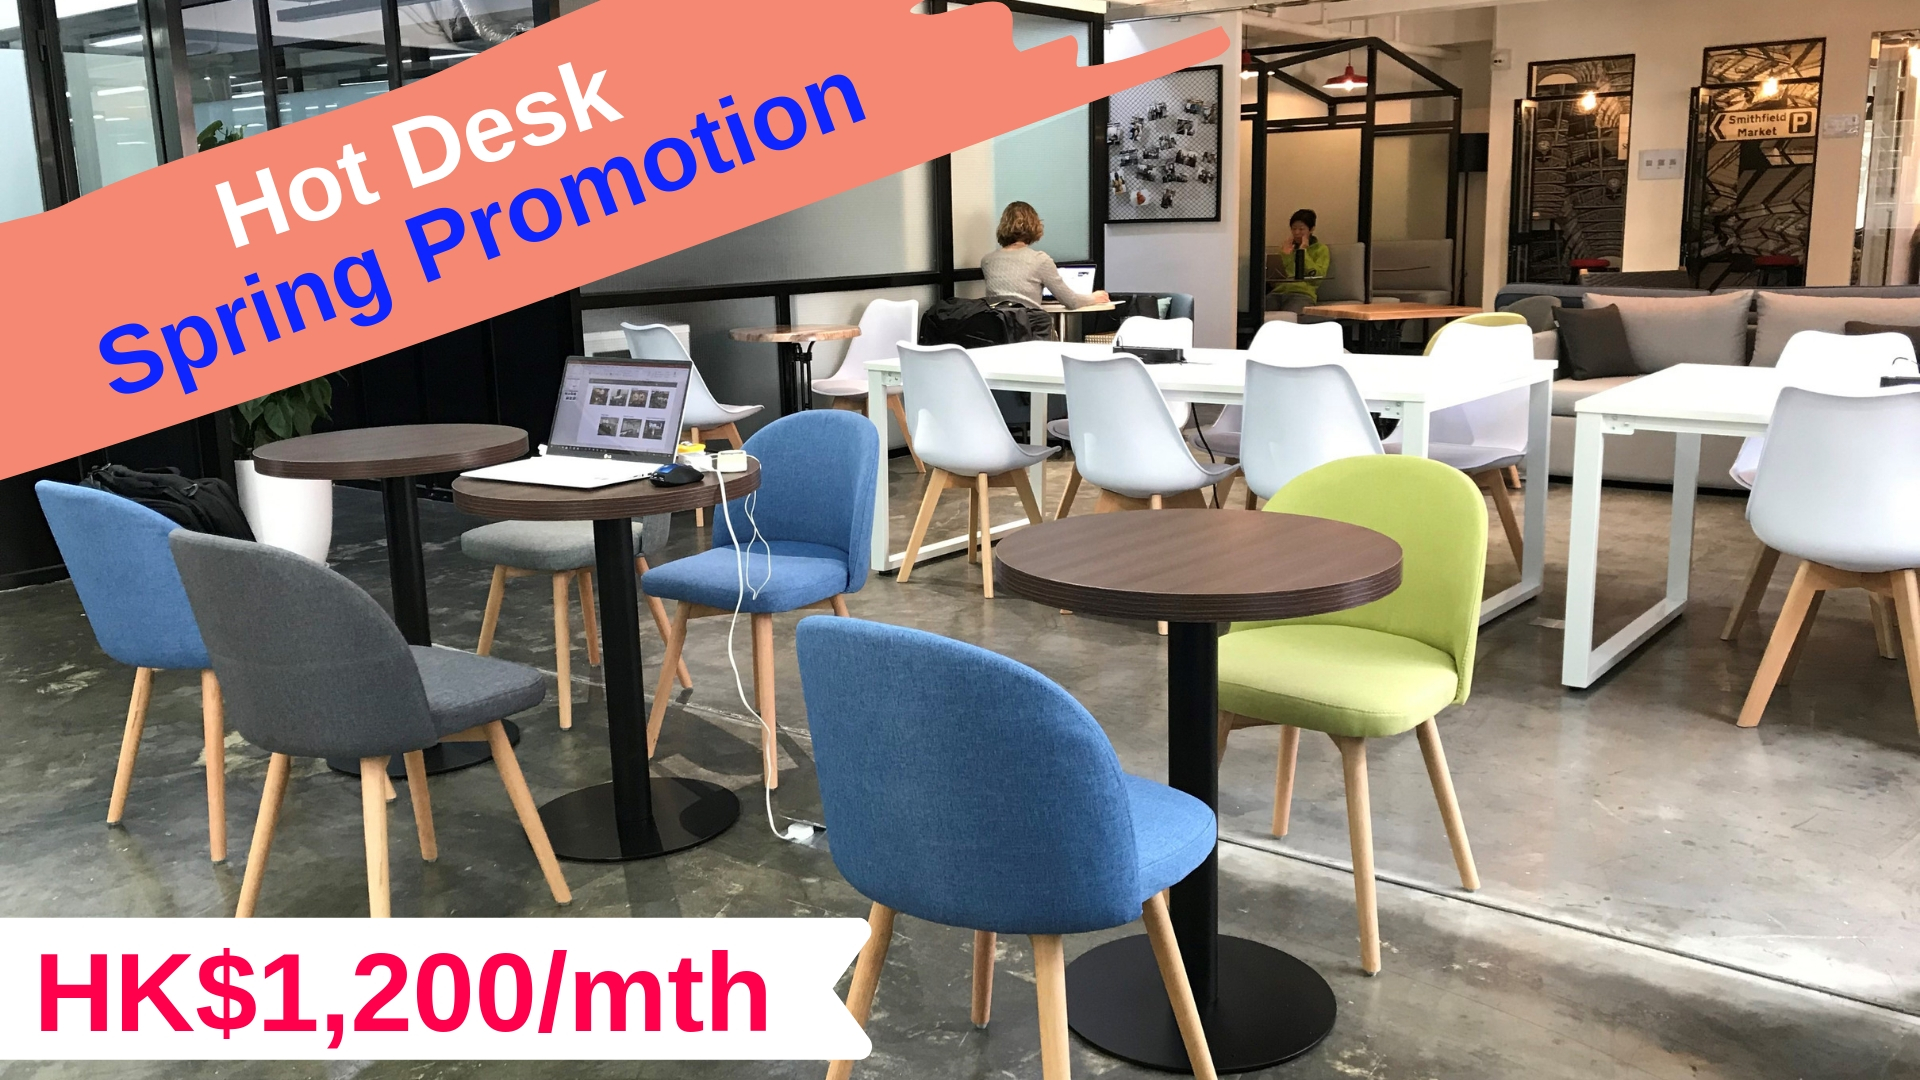 Hot Desk   from HK$960 per month